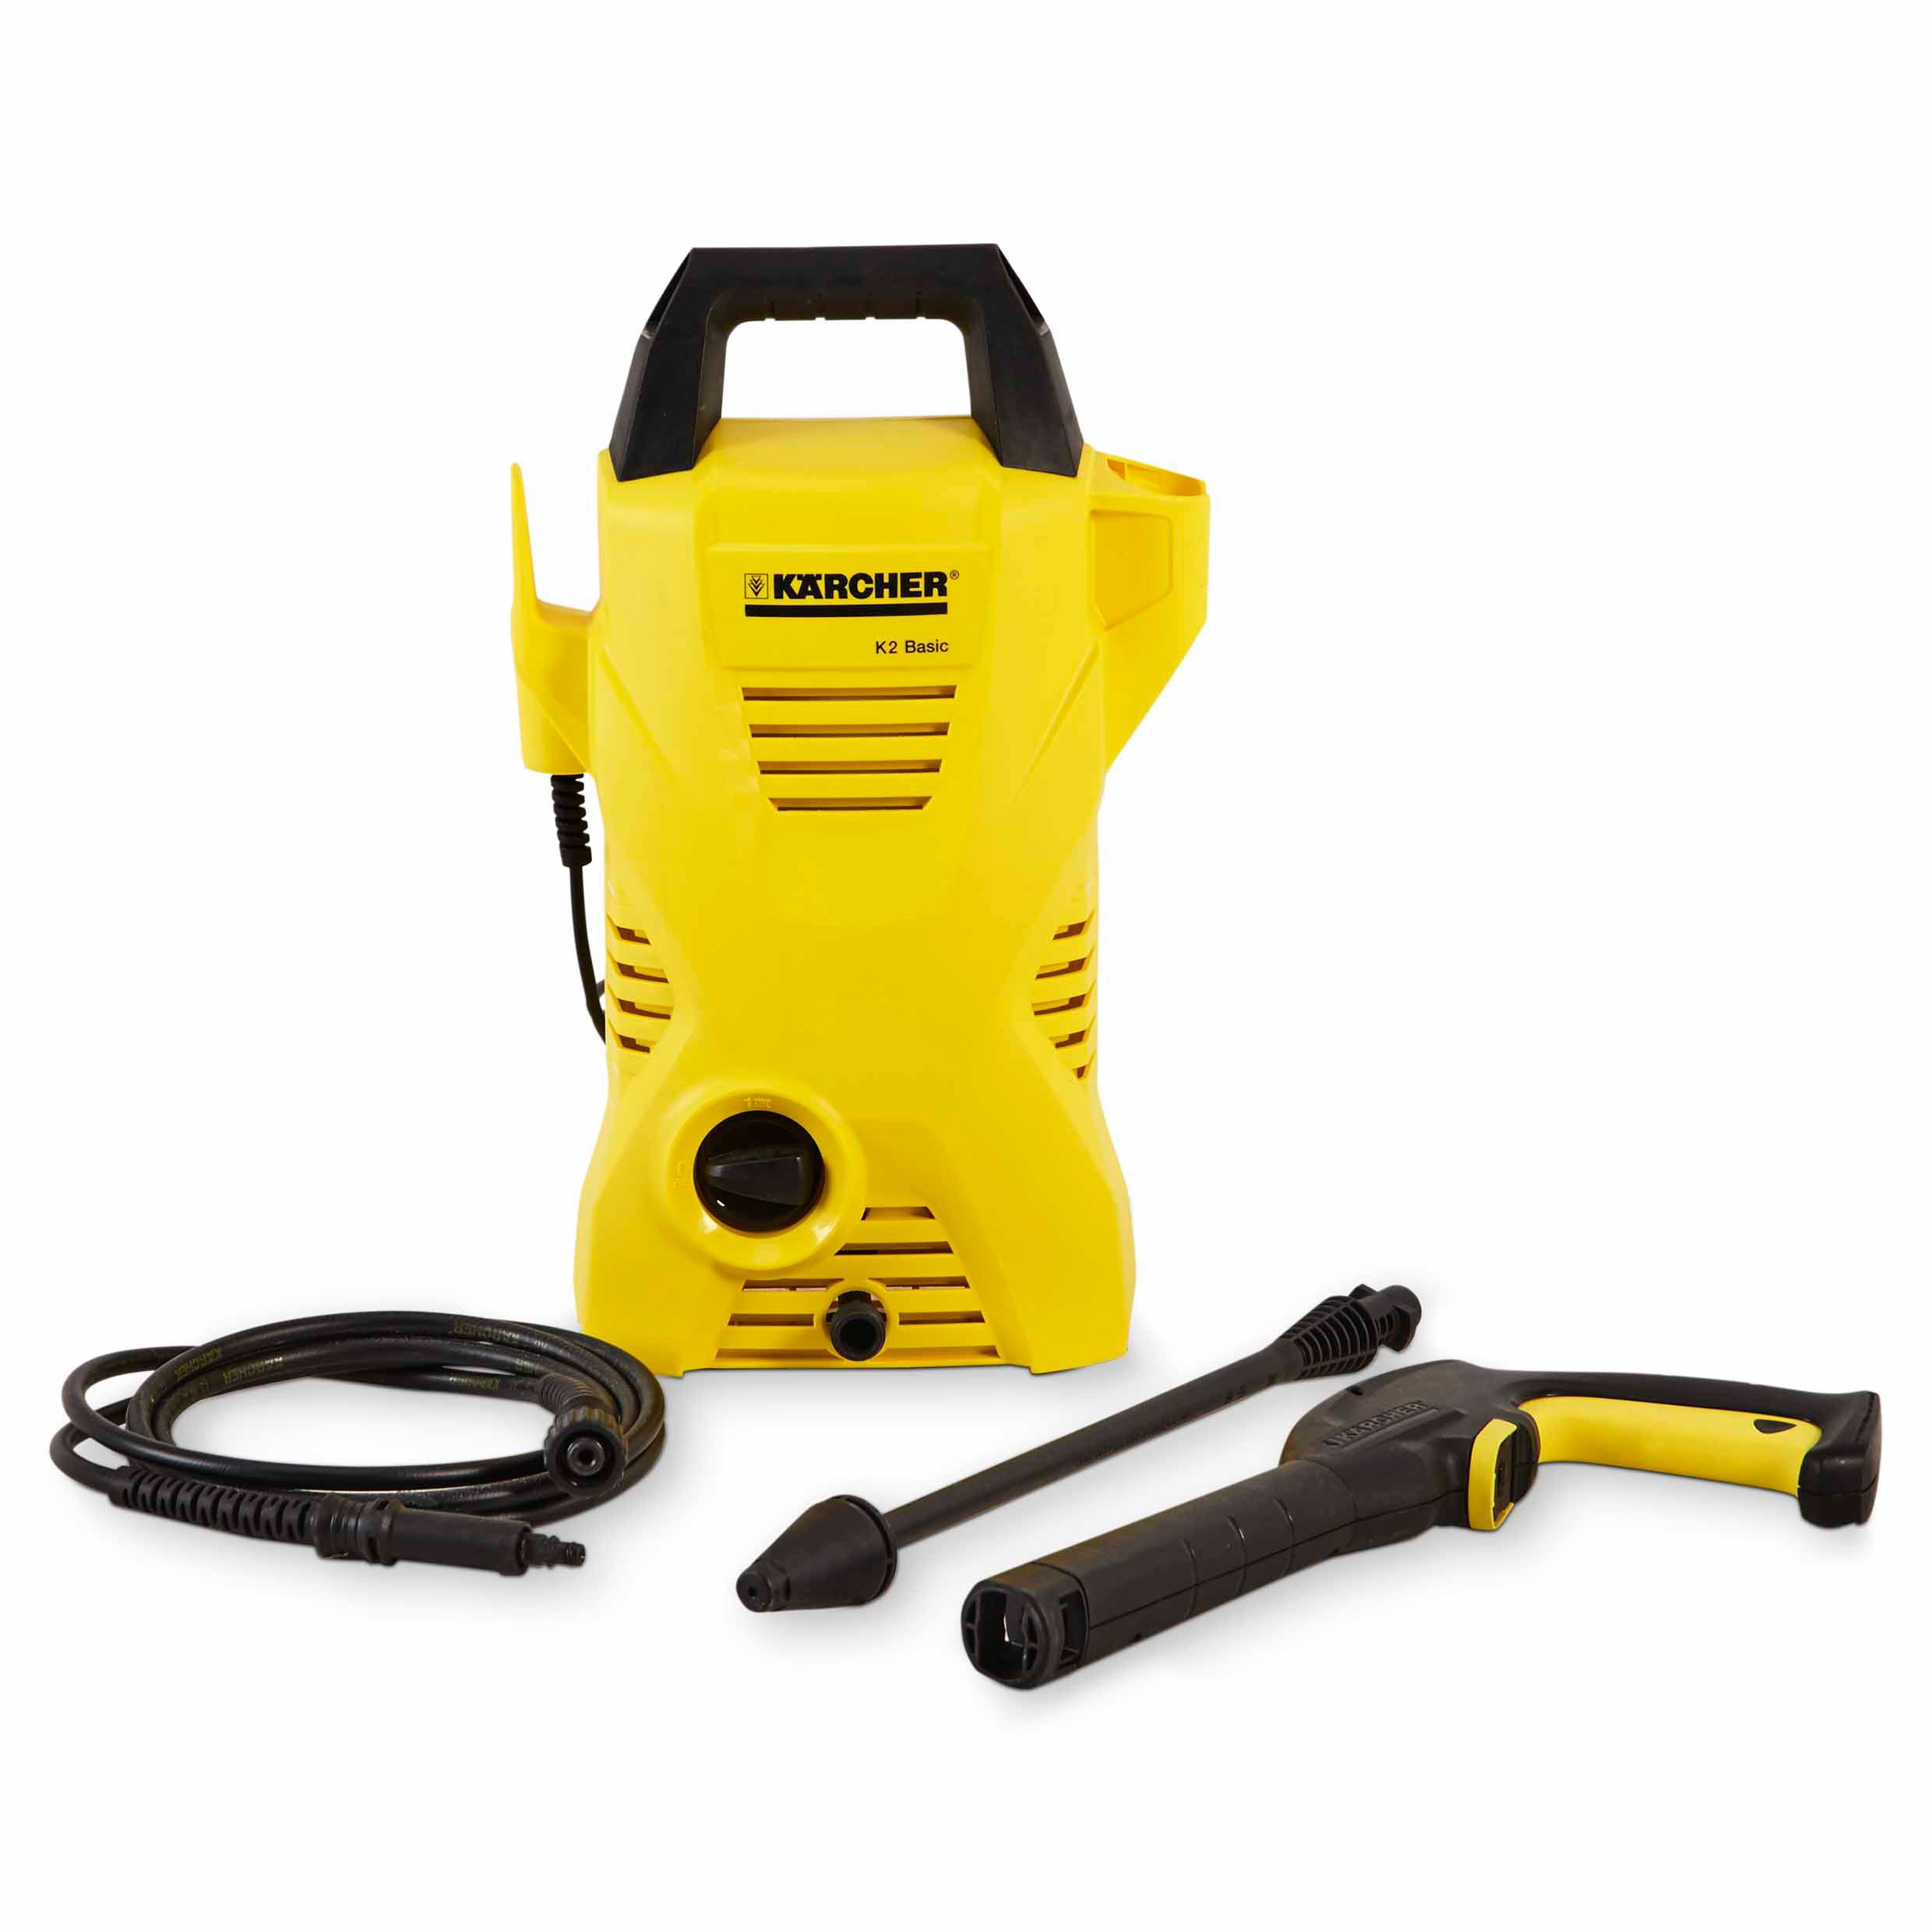 Karcher K2 Basic Pressure Washer 1400 W | Departments | DIY at B&Q